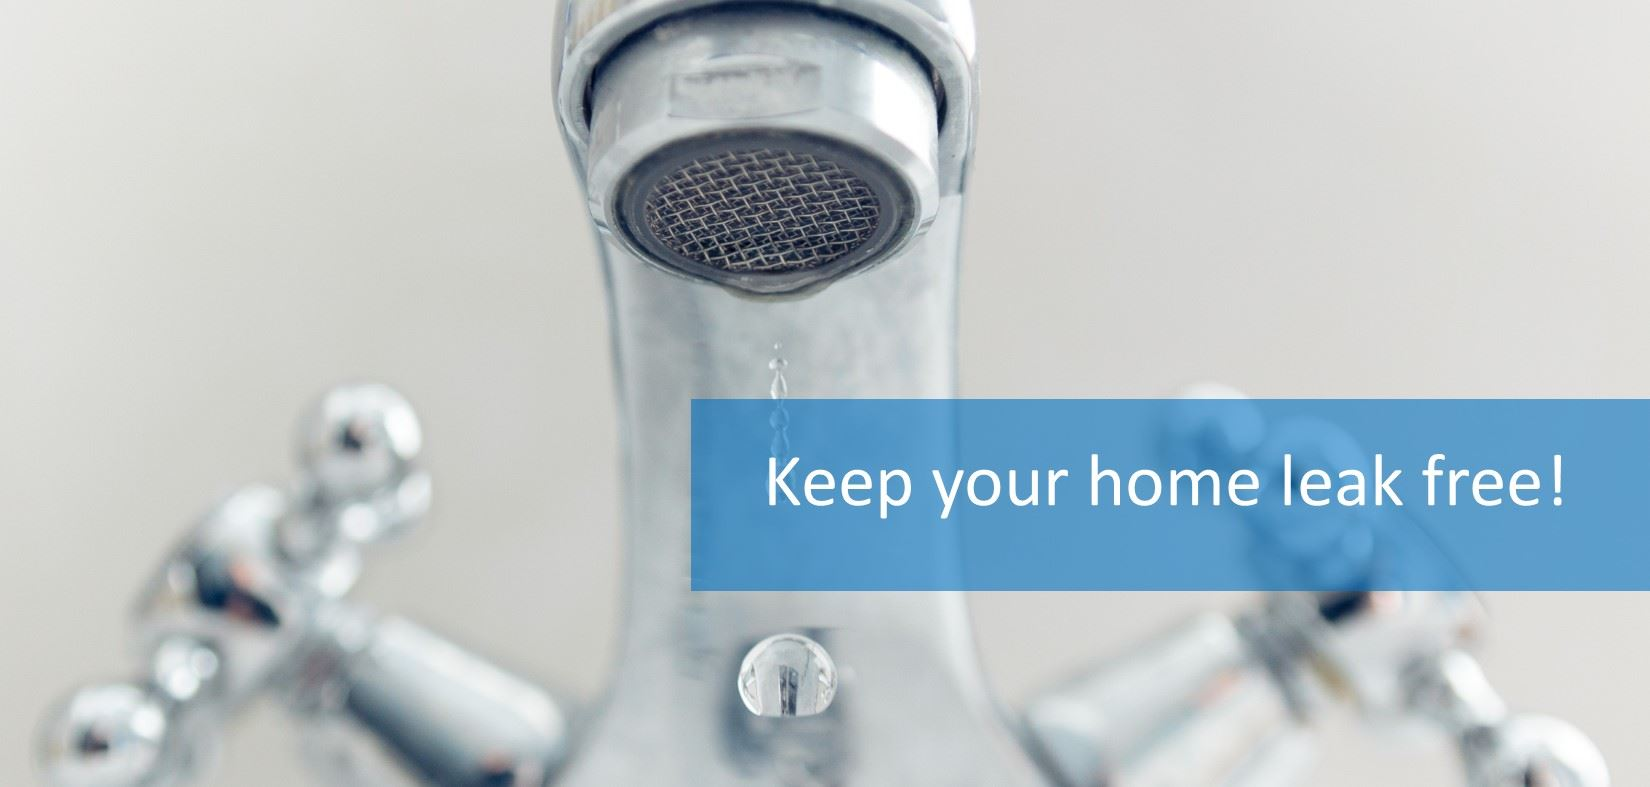 Keep Your Home Leak Free